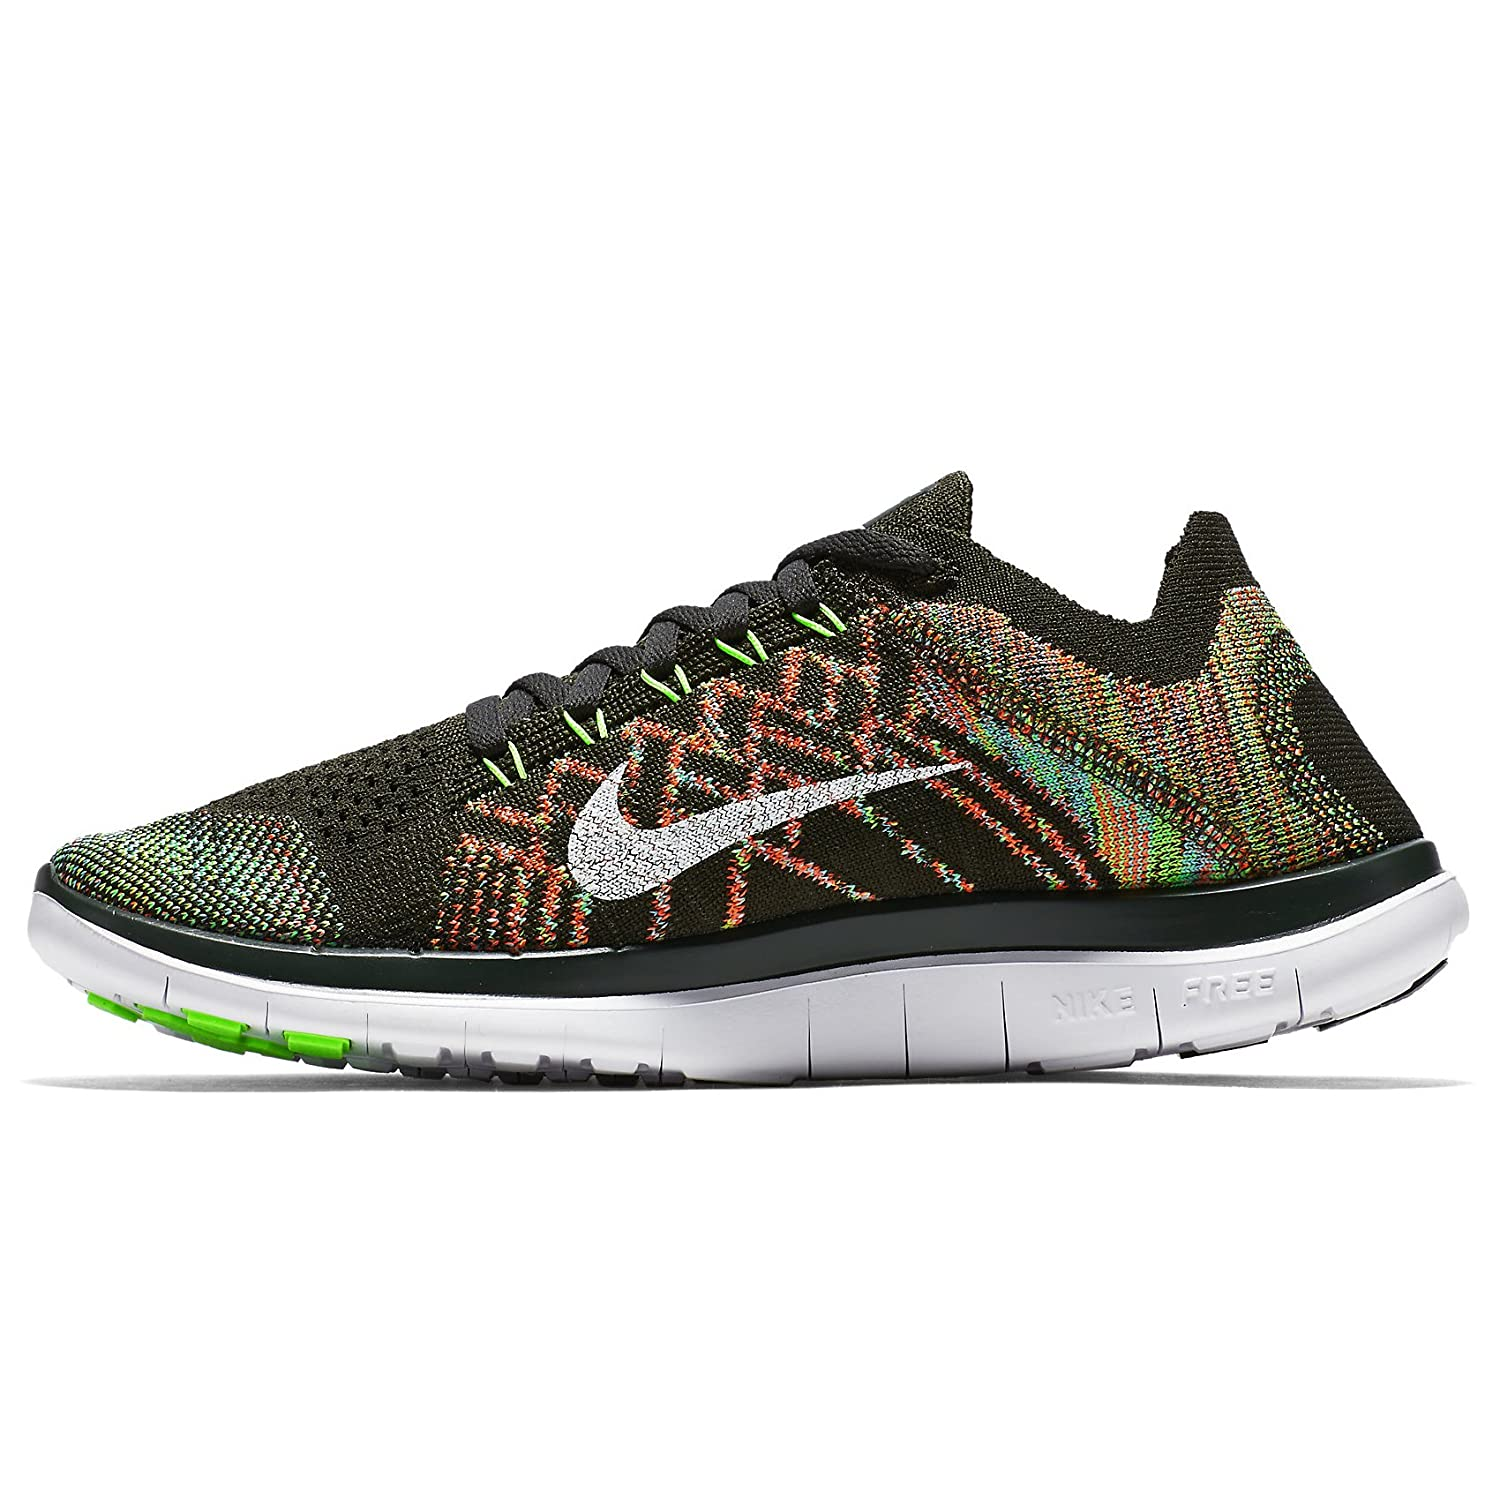 huge selection of f5d79 3e8d2 Nike Free 4.0 Flyknit 717076-301 Sequoia White Blue Orange Women s Running  Shoes (Size 12)  Amazon.ca  Shoes   Handbags